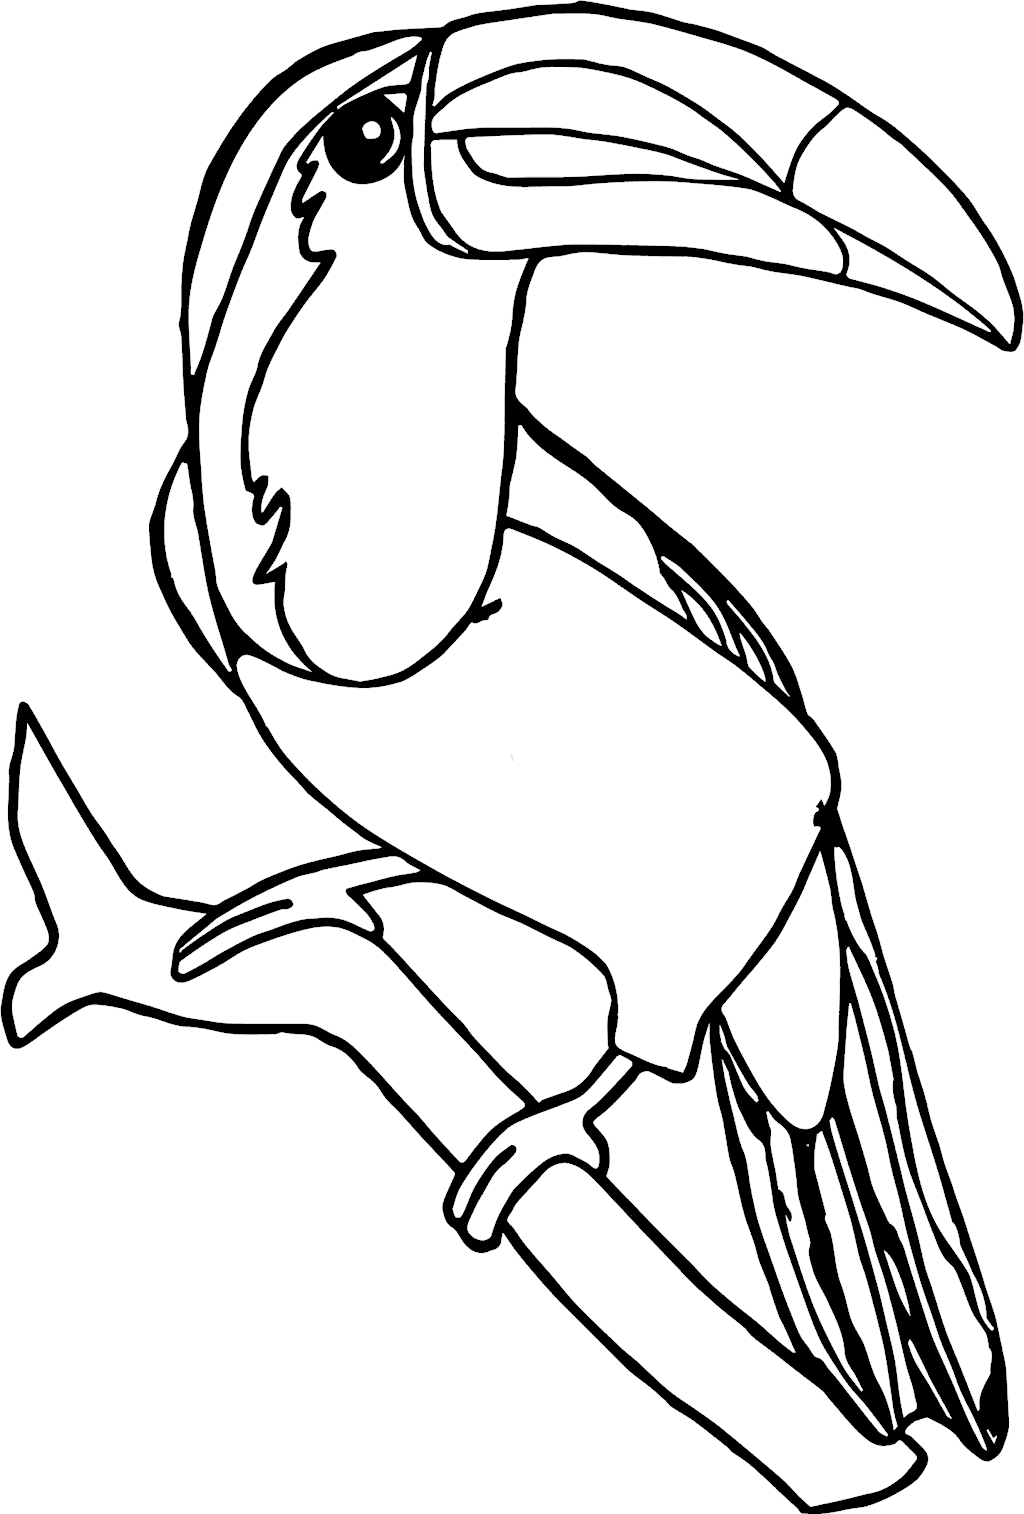 Toucan | Free Printable Templates & Coloring Pages | FirstPalette.com | 1514x1024